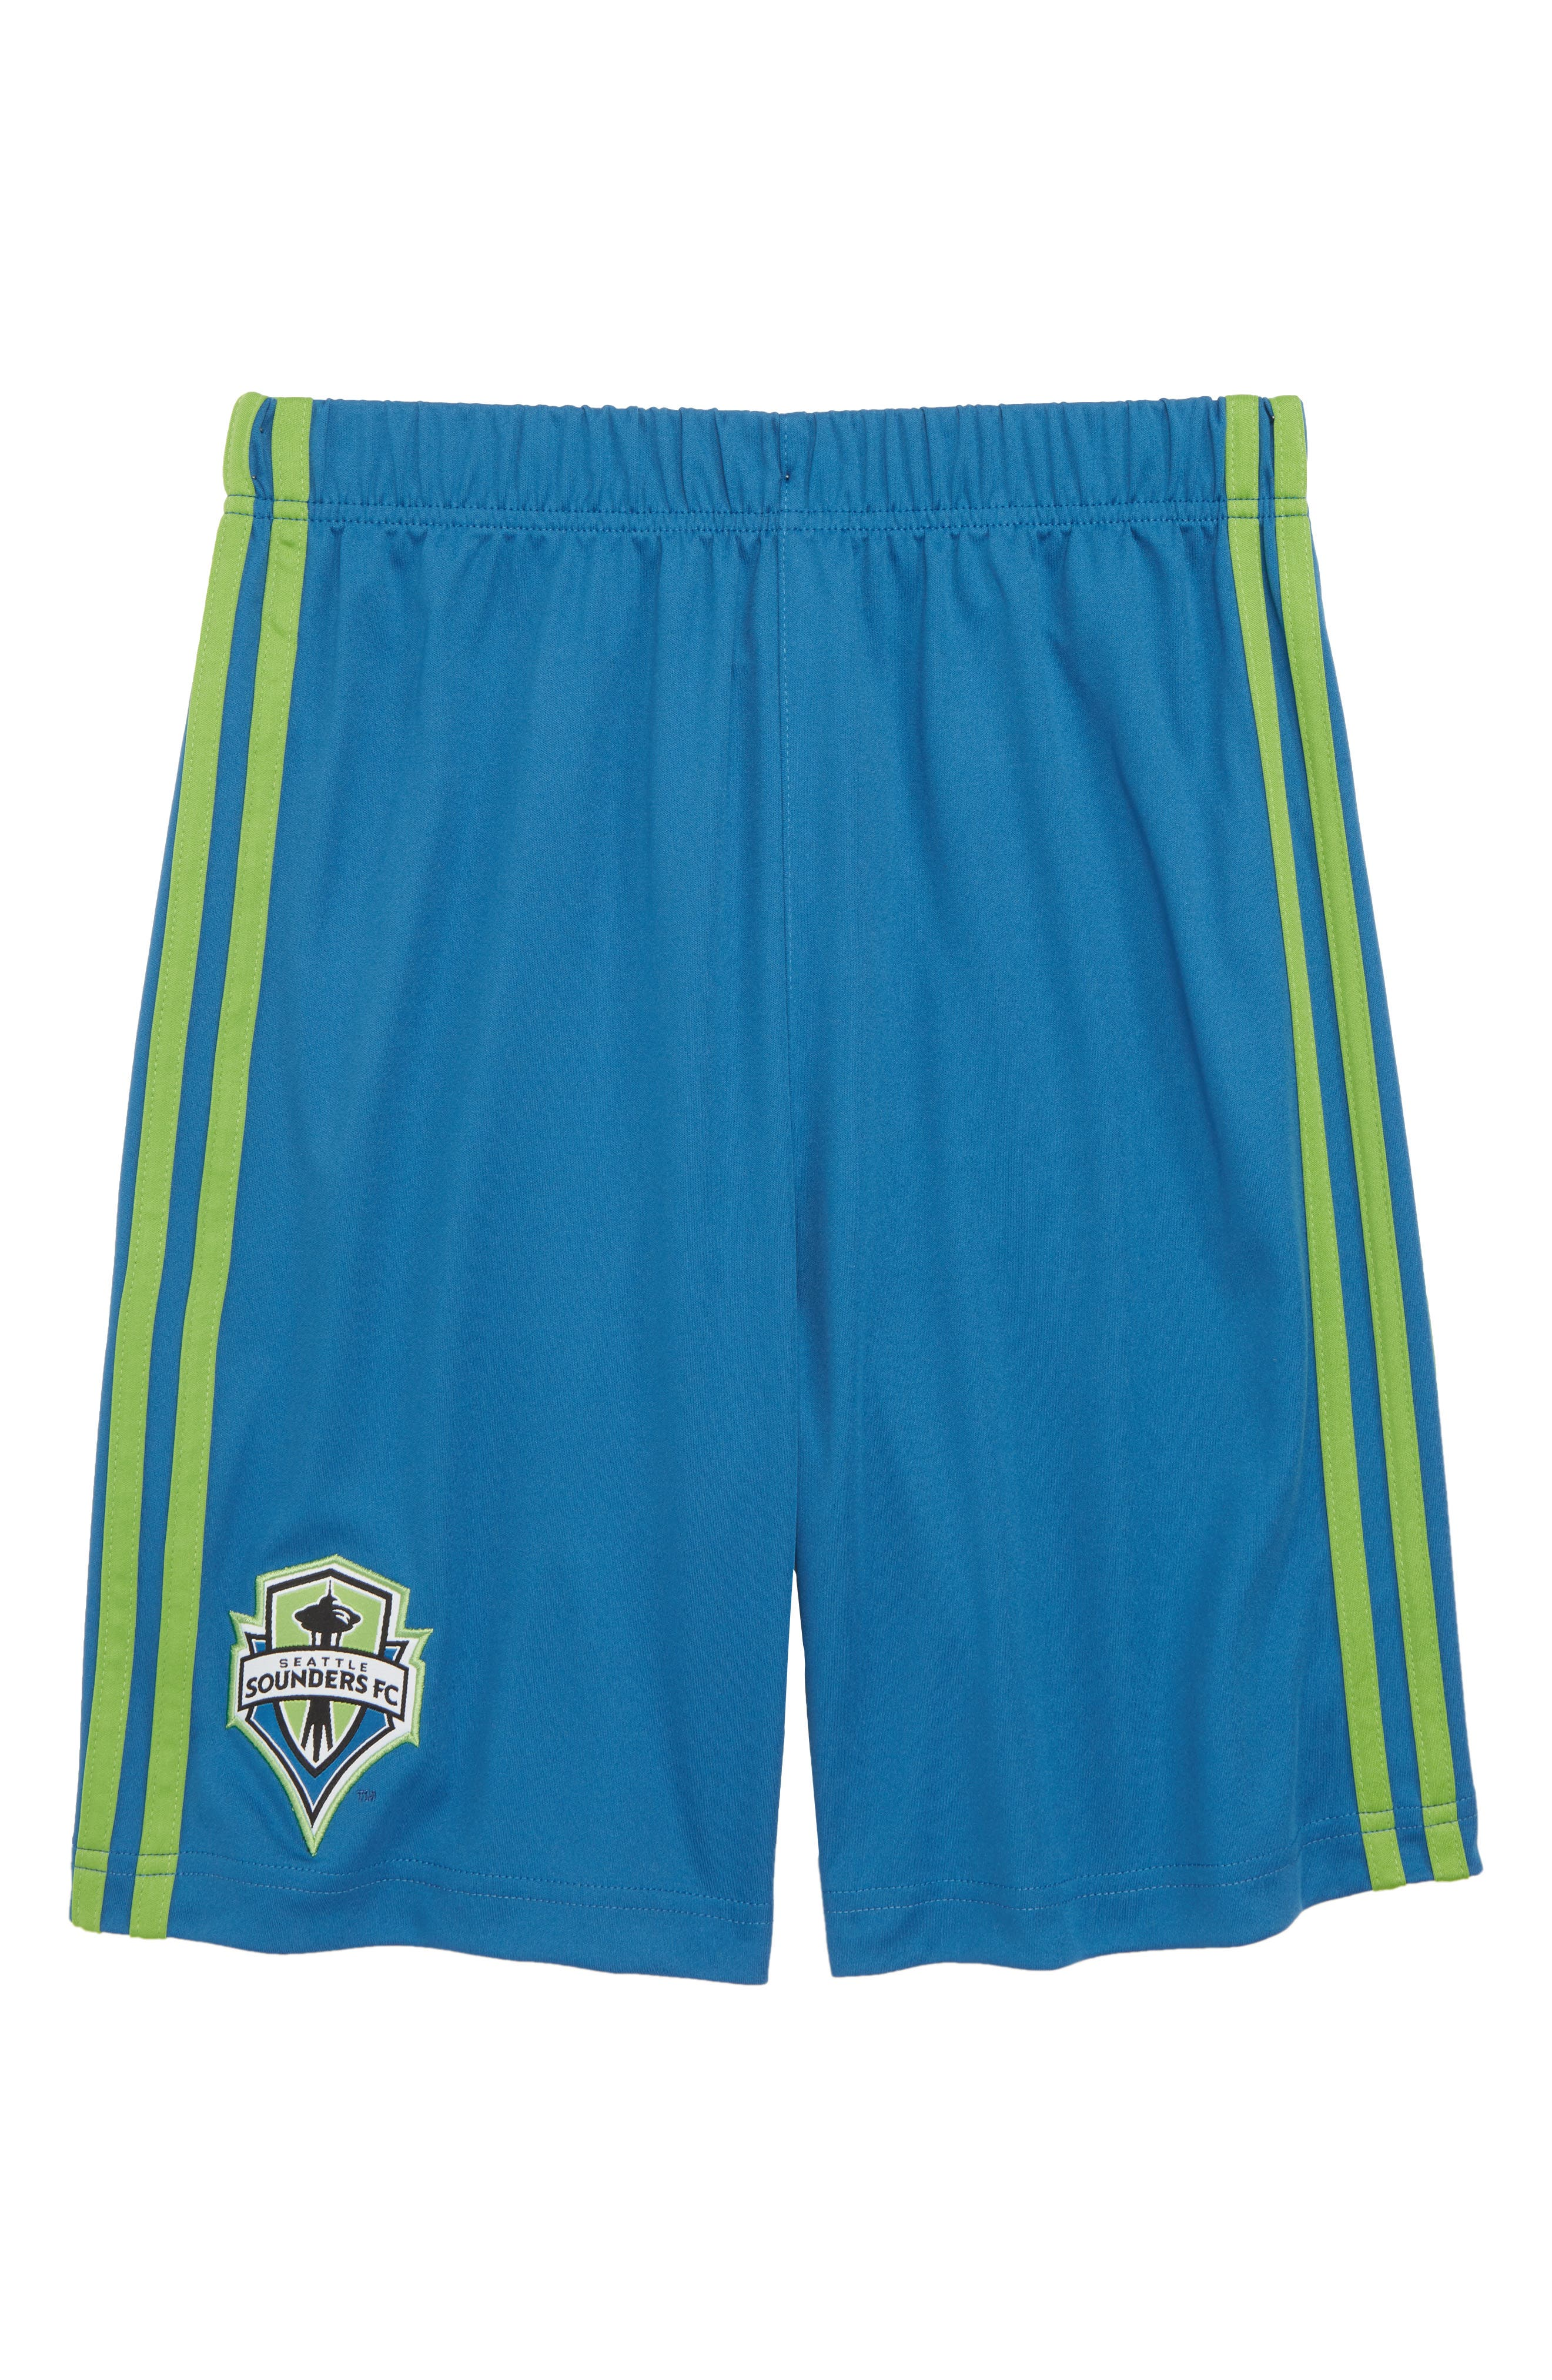 MLS Seattle Sounders FC Shorts,                         Main,                         color,